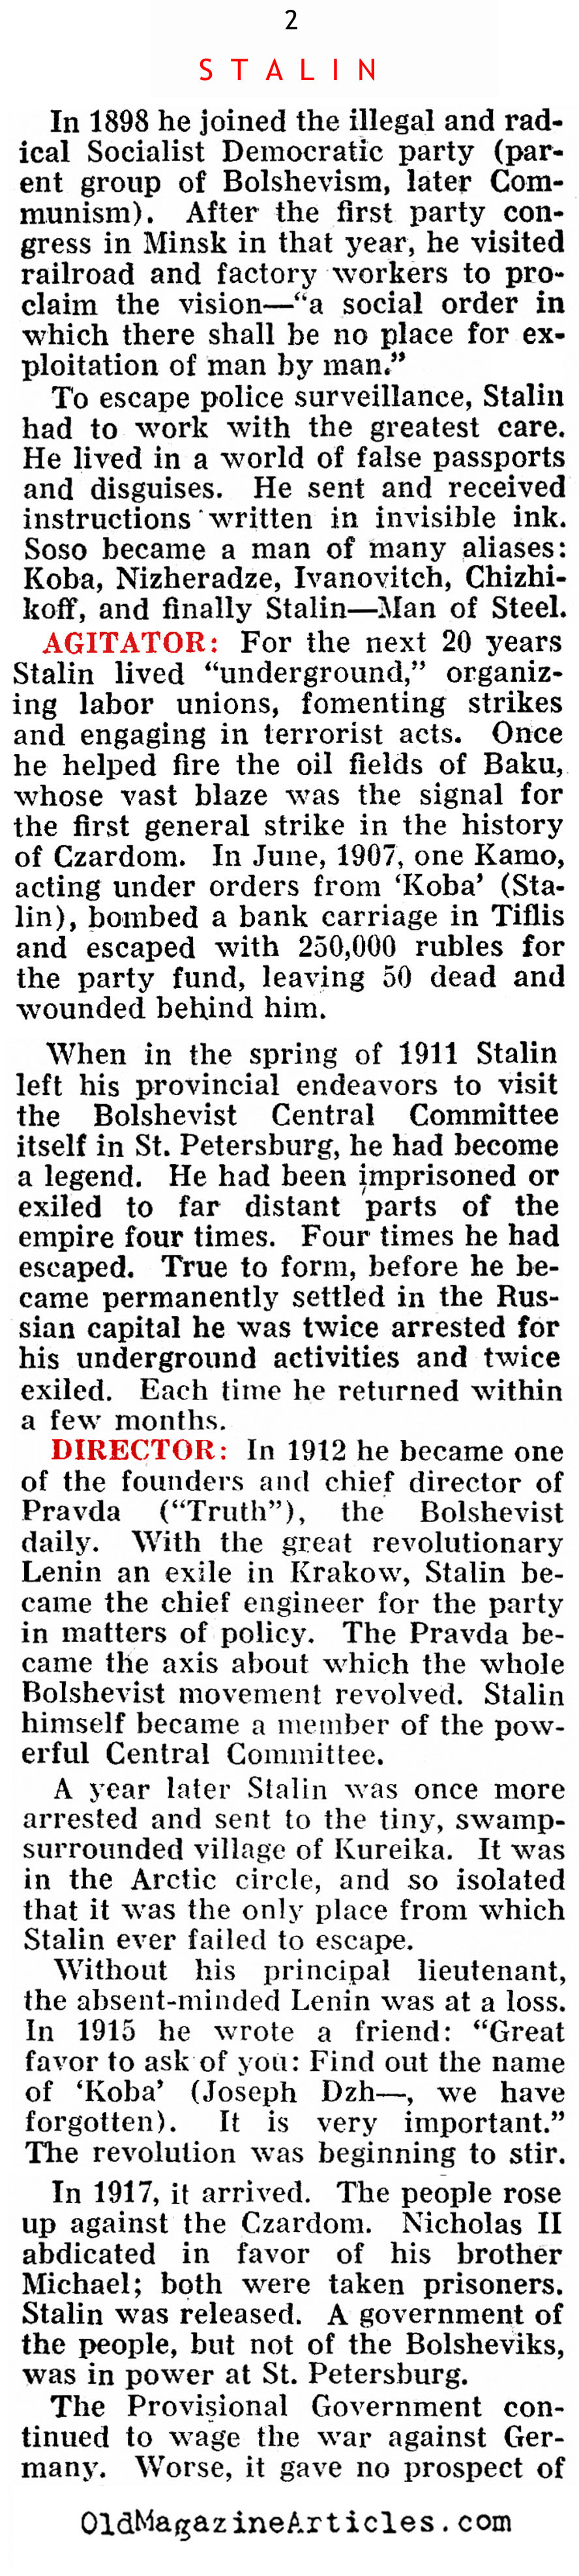 Meet Joseph Stalin (Pathfinder Magazine, 1937)